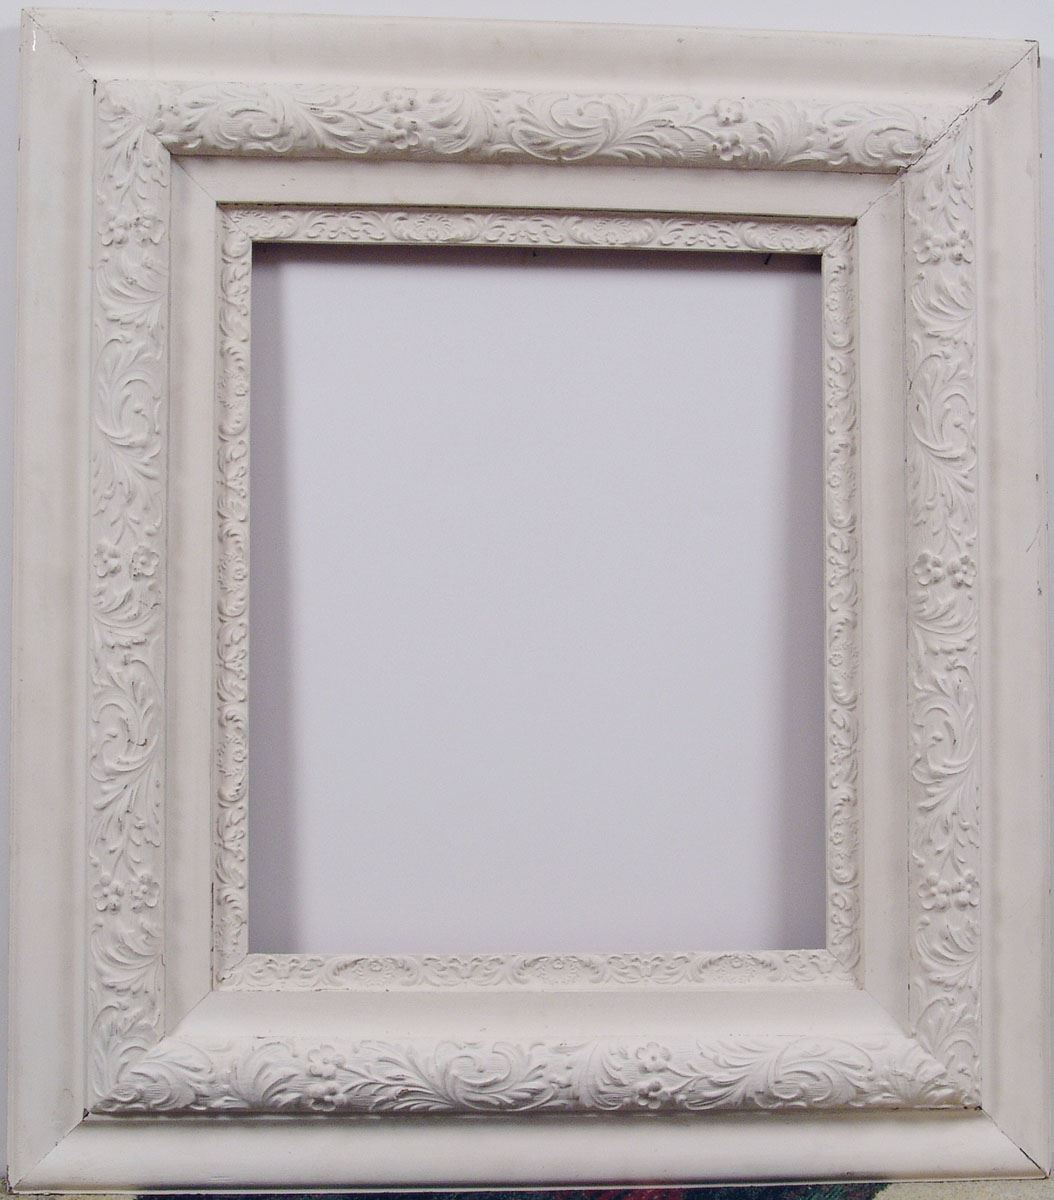 Large Antique Shabby Chic Wood Frame 24x28 Painted